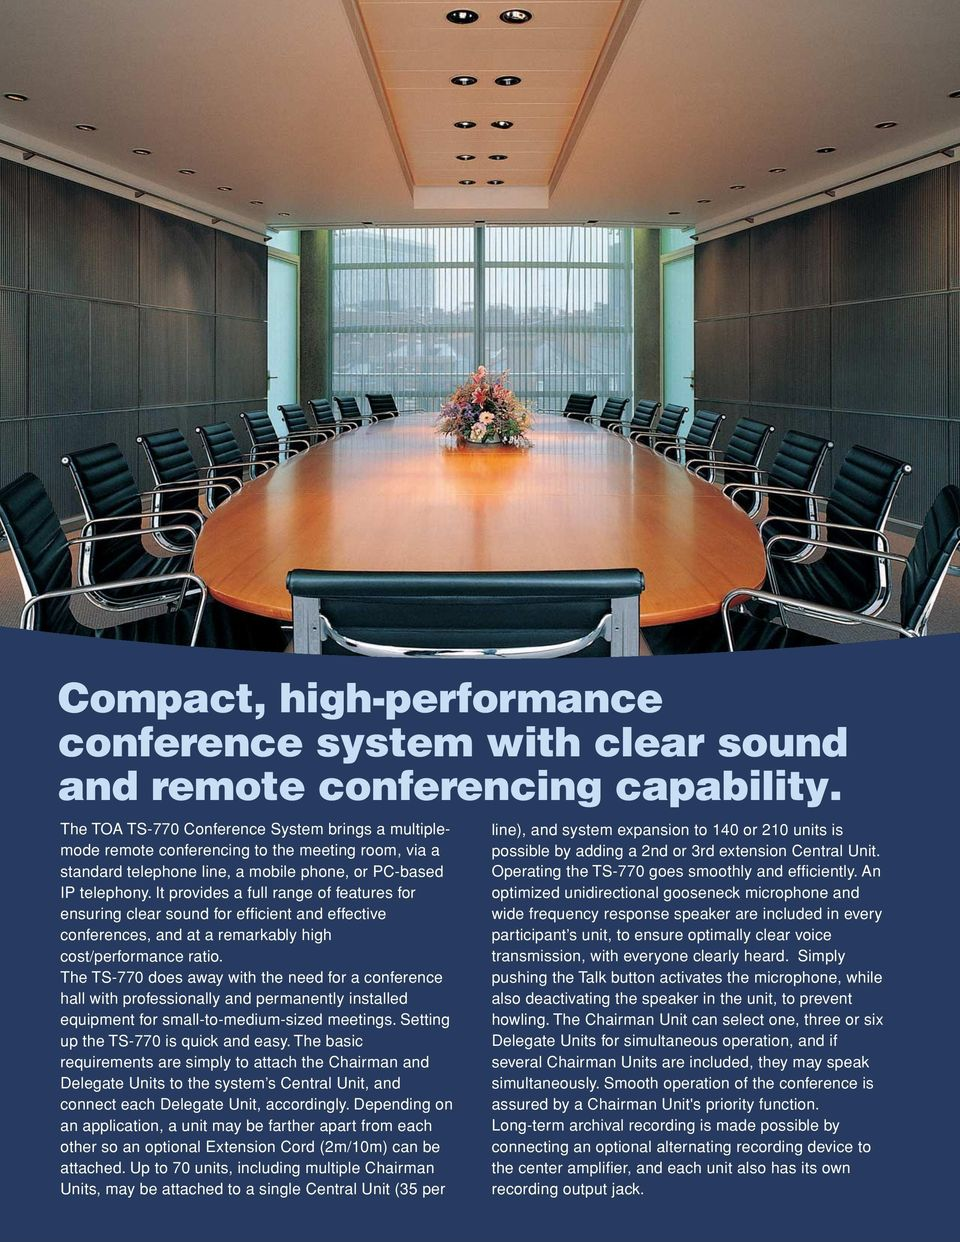 It provides a full range of features for ensuring clear sound for efficient and effective conferences, and at a remarkably high cost/performance ratio.